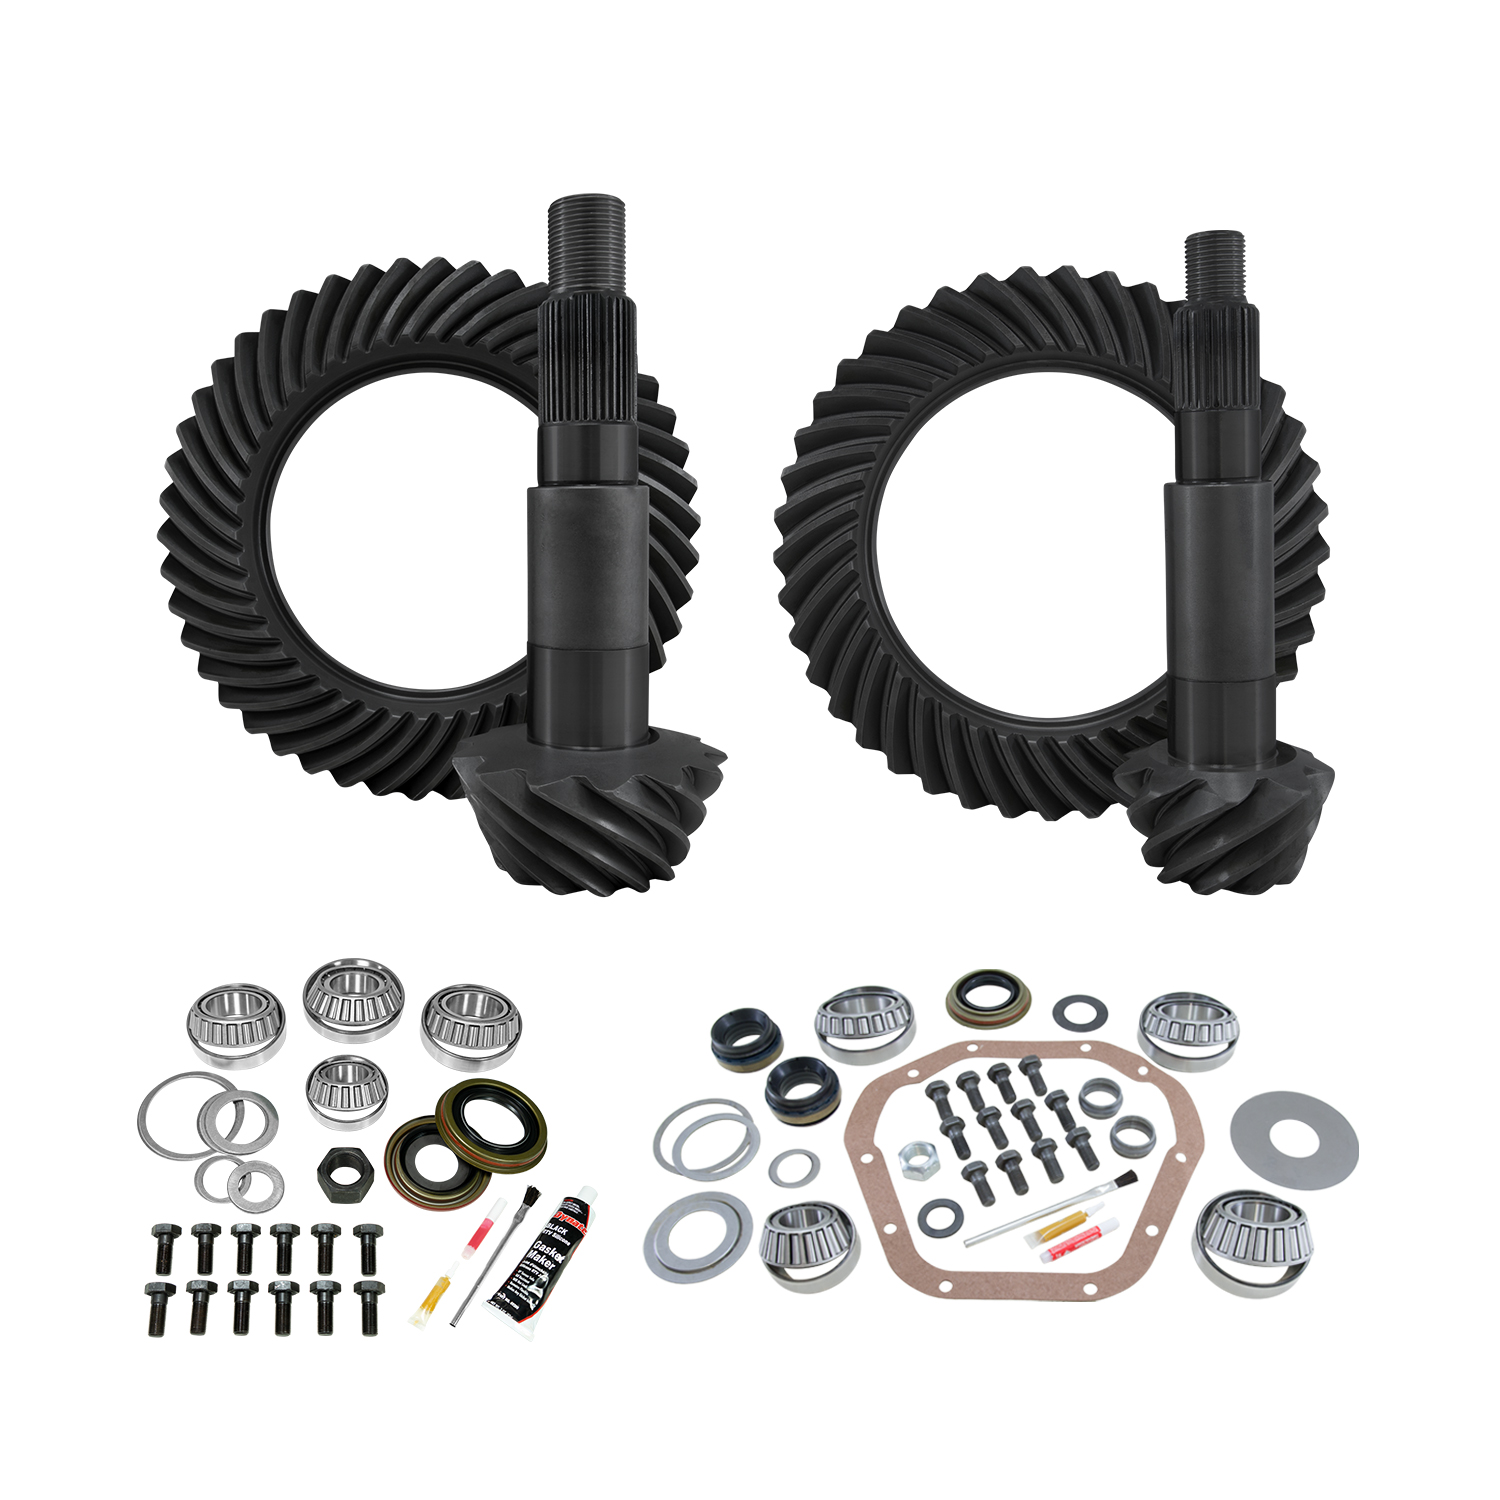 YGK151 - Yukon Complete Gear and Kit Pakage for F350 Dana 80 Rear & Dana 60 Reverse Thick Front, with 5:13 Gear Ratio